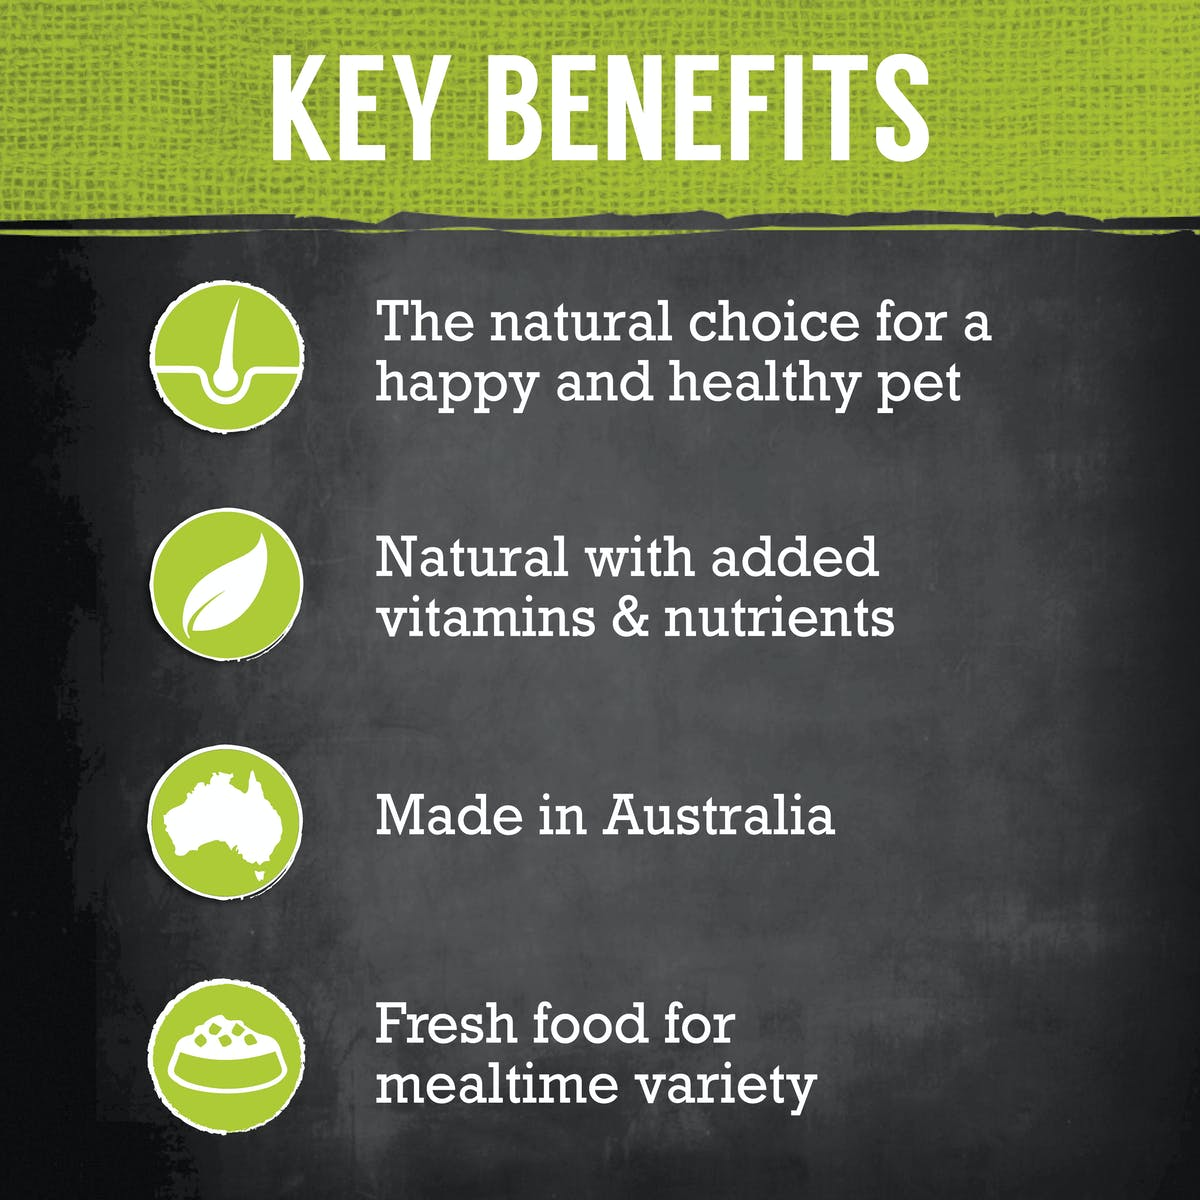 Nature's Gift | Kangaroo, Sweet Potato & Peas | Chilled dog food | Left of pack